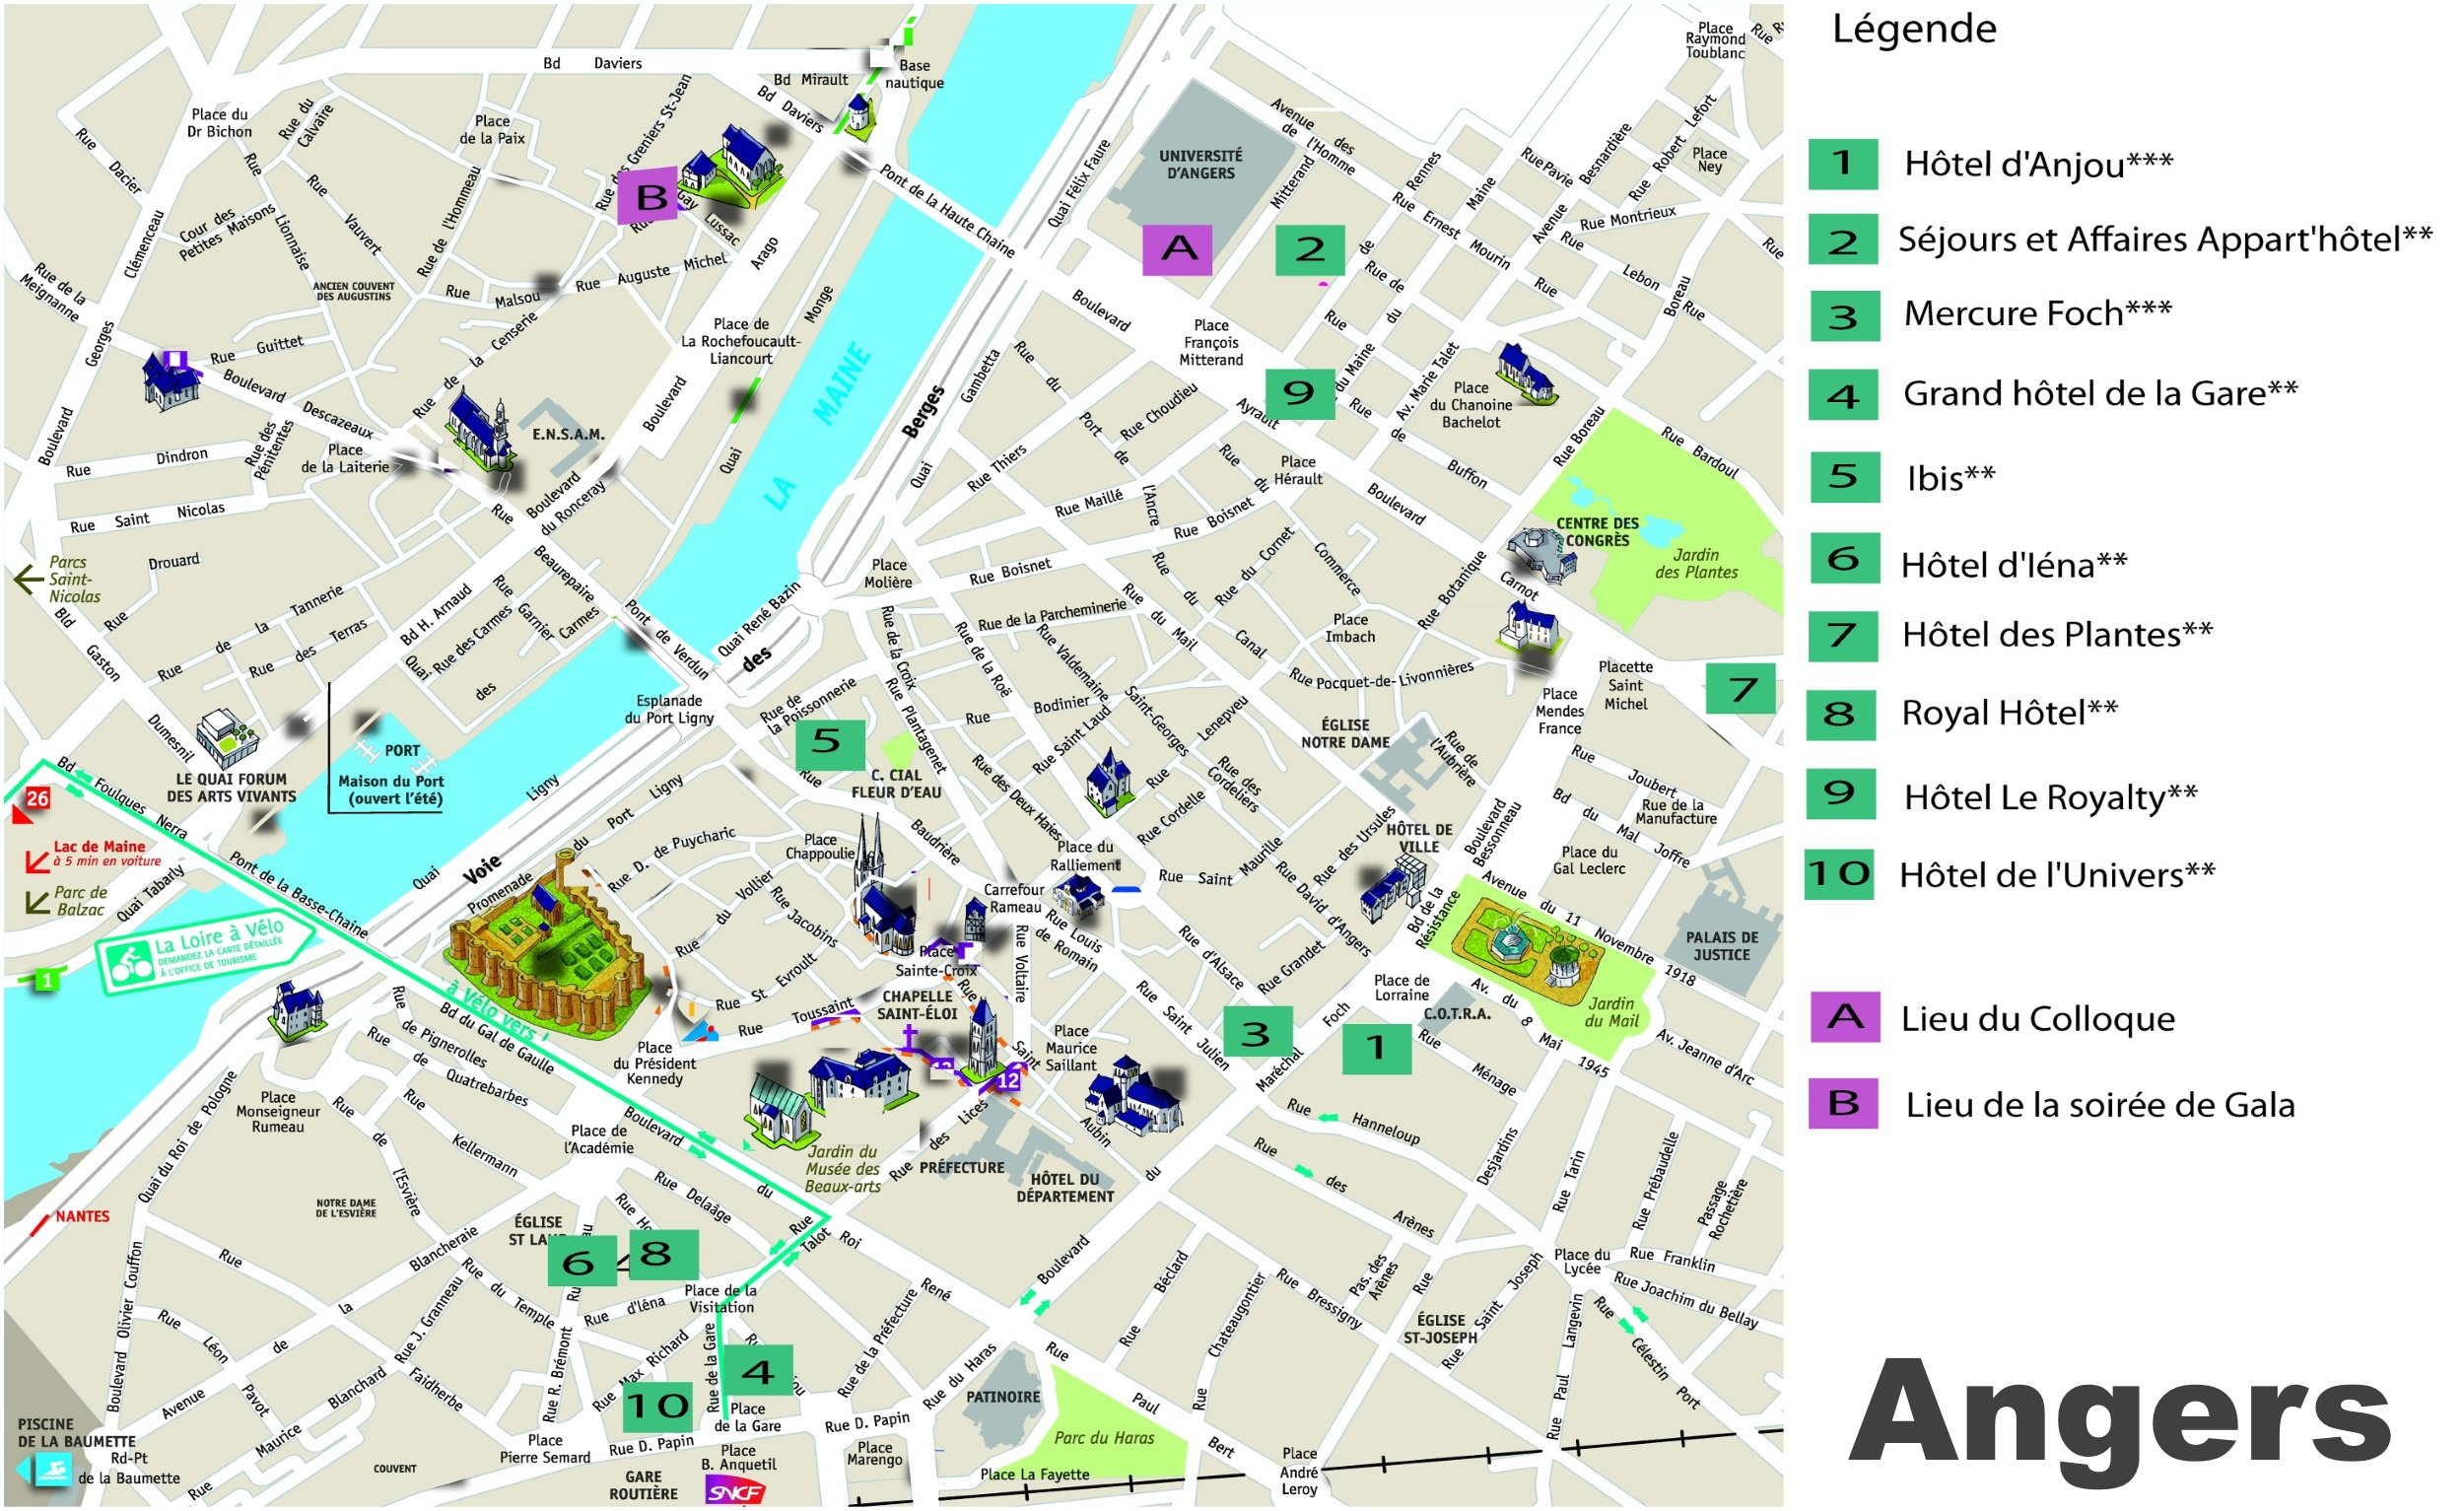 los angeles tourist map with Angers Hotel Map on Sri Lanka also Freiburg Tourist Attractions Map also Verona Tourist Attractions Map besides Trento Tourist Map together with Melbourne Zoo Map.